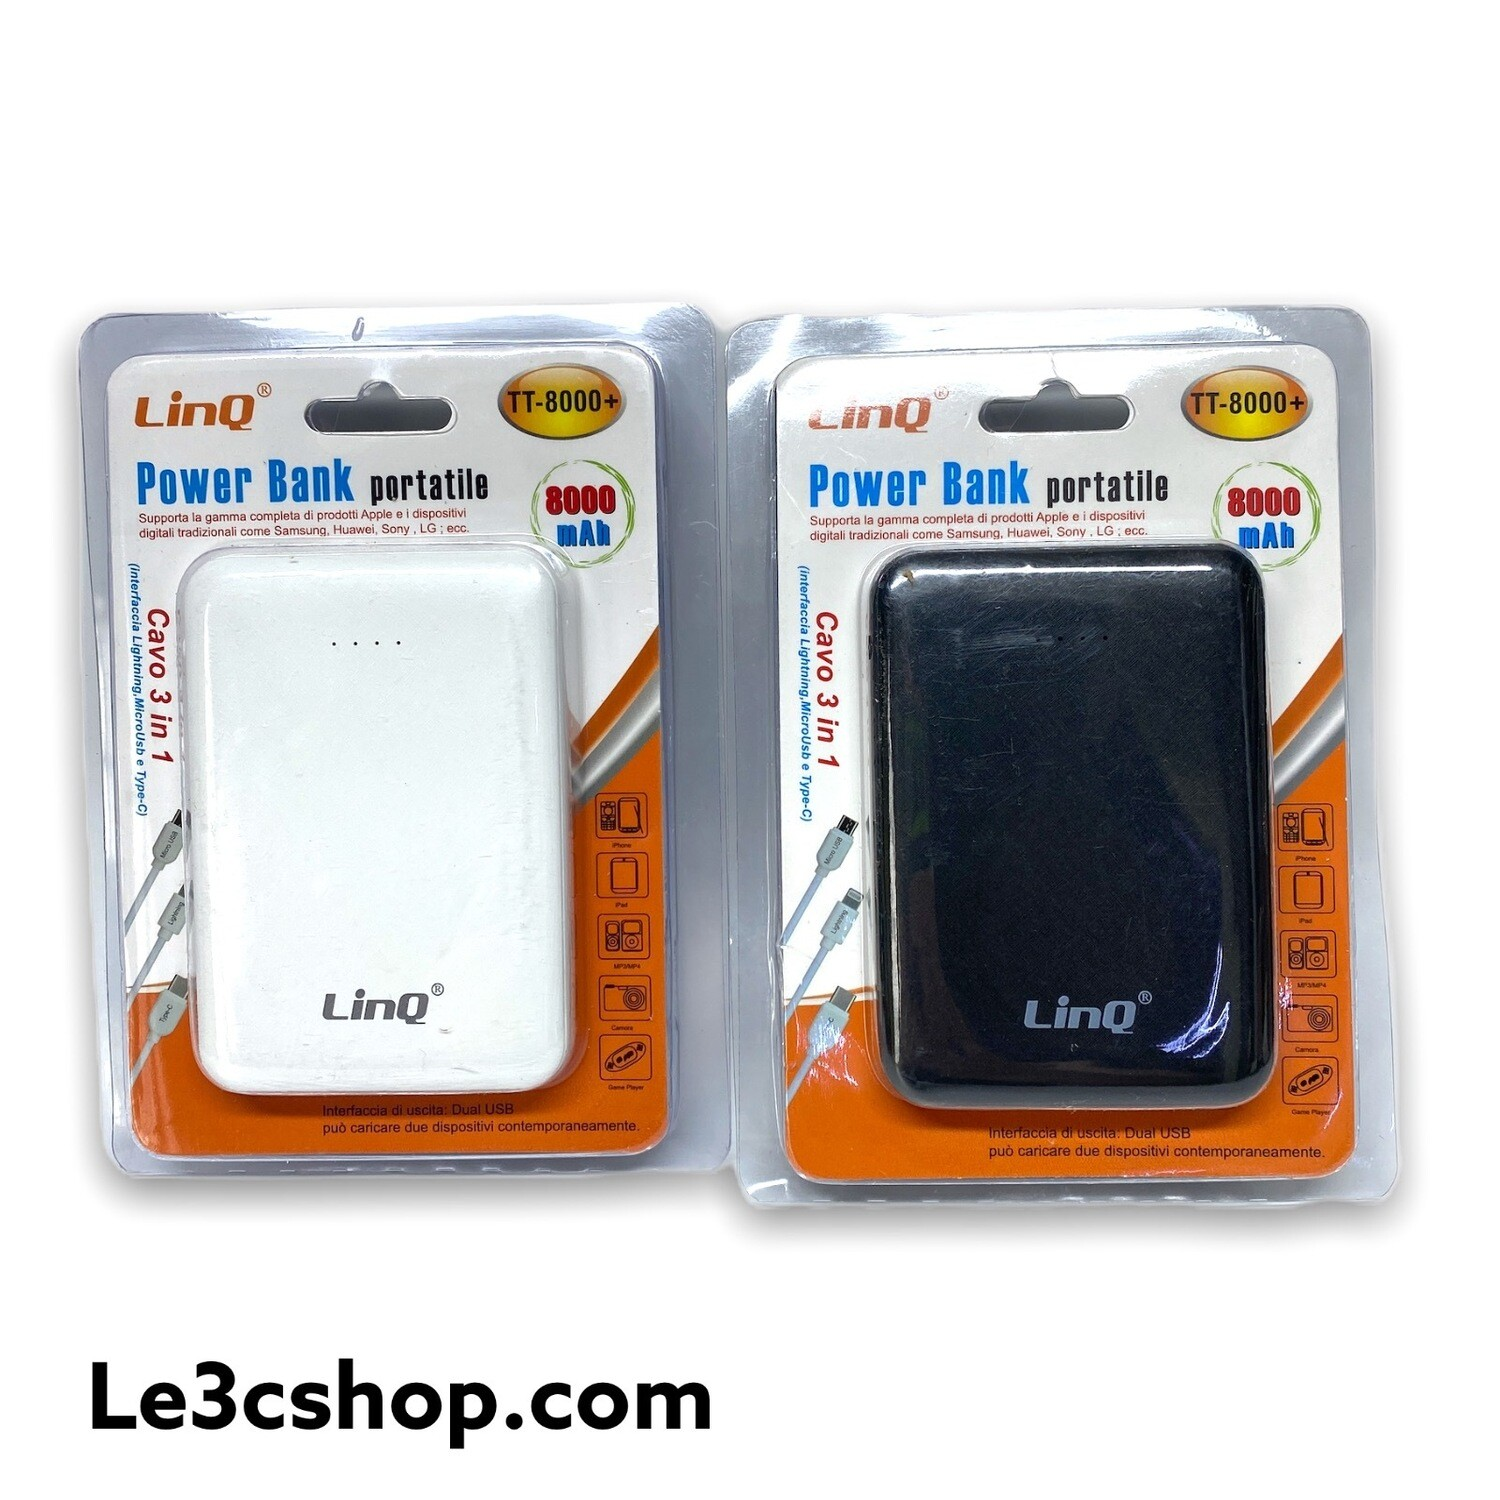 Powerbank Da 8000 MAh Linq